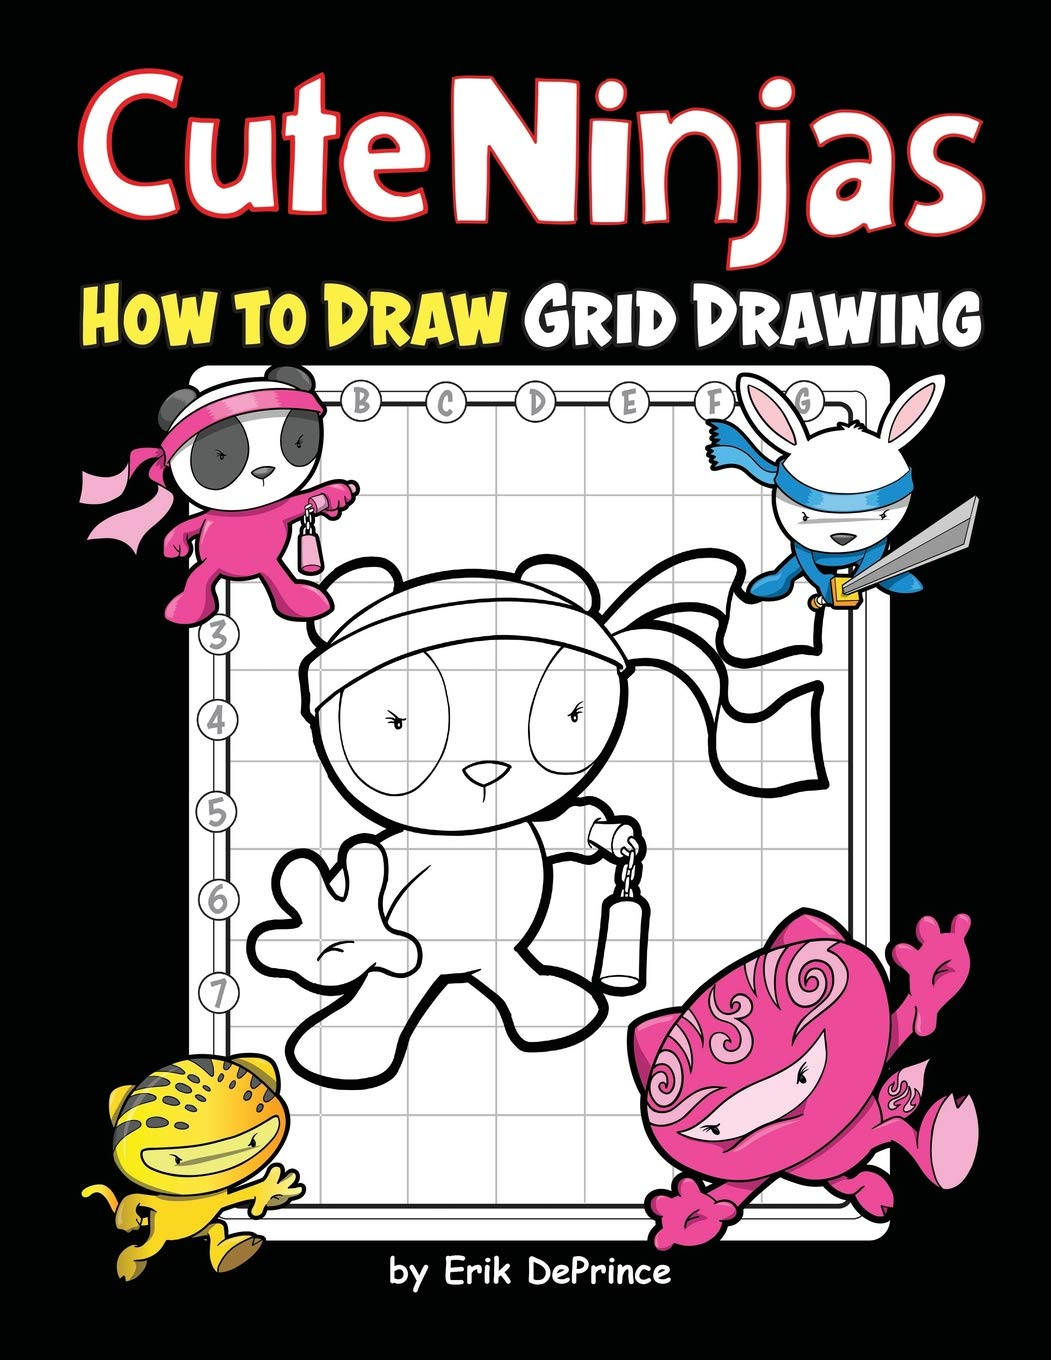 Cute Ninjas How To Draw Grid Drawing: Cute Ninjas Grid ...